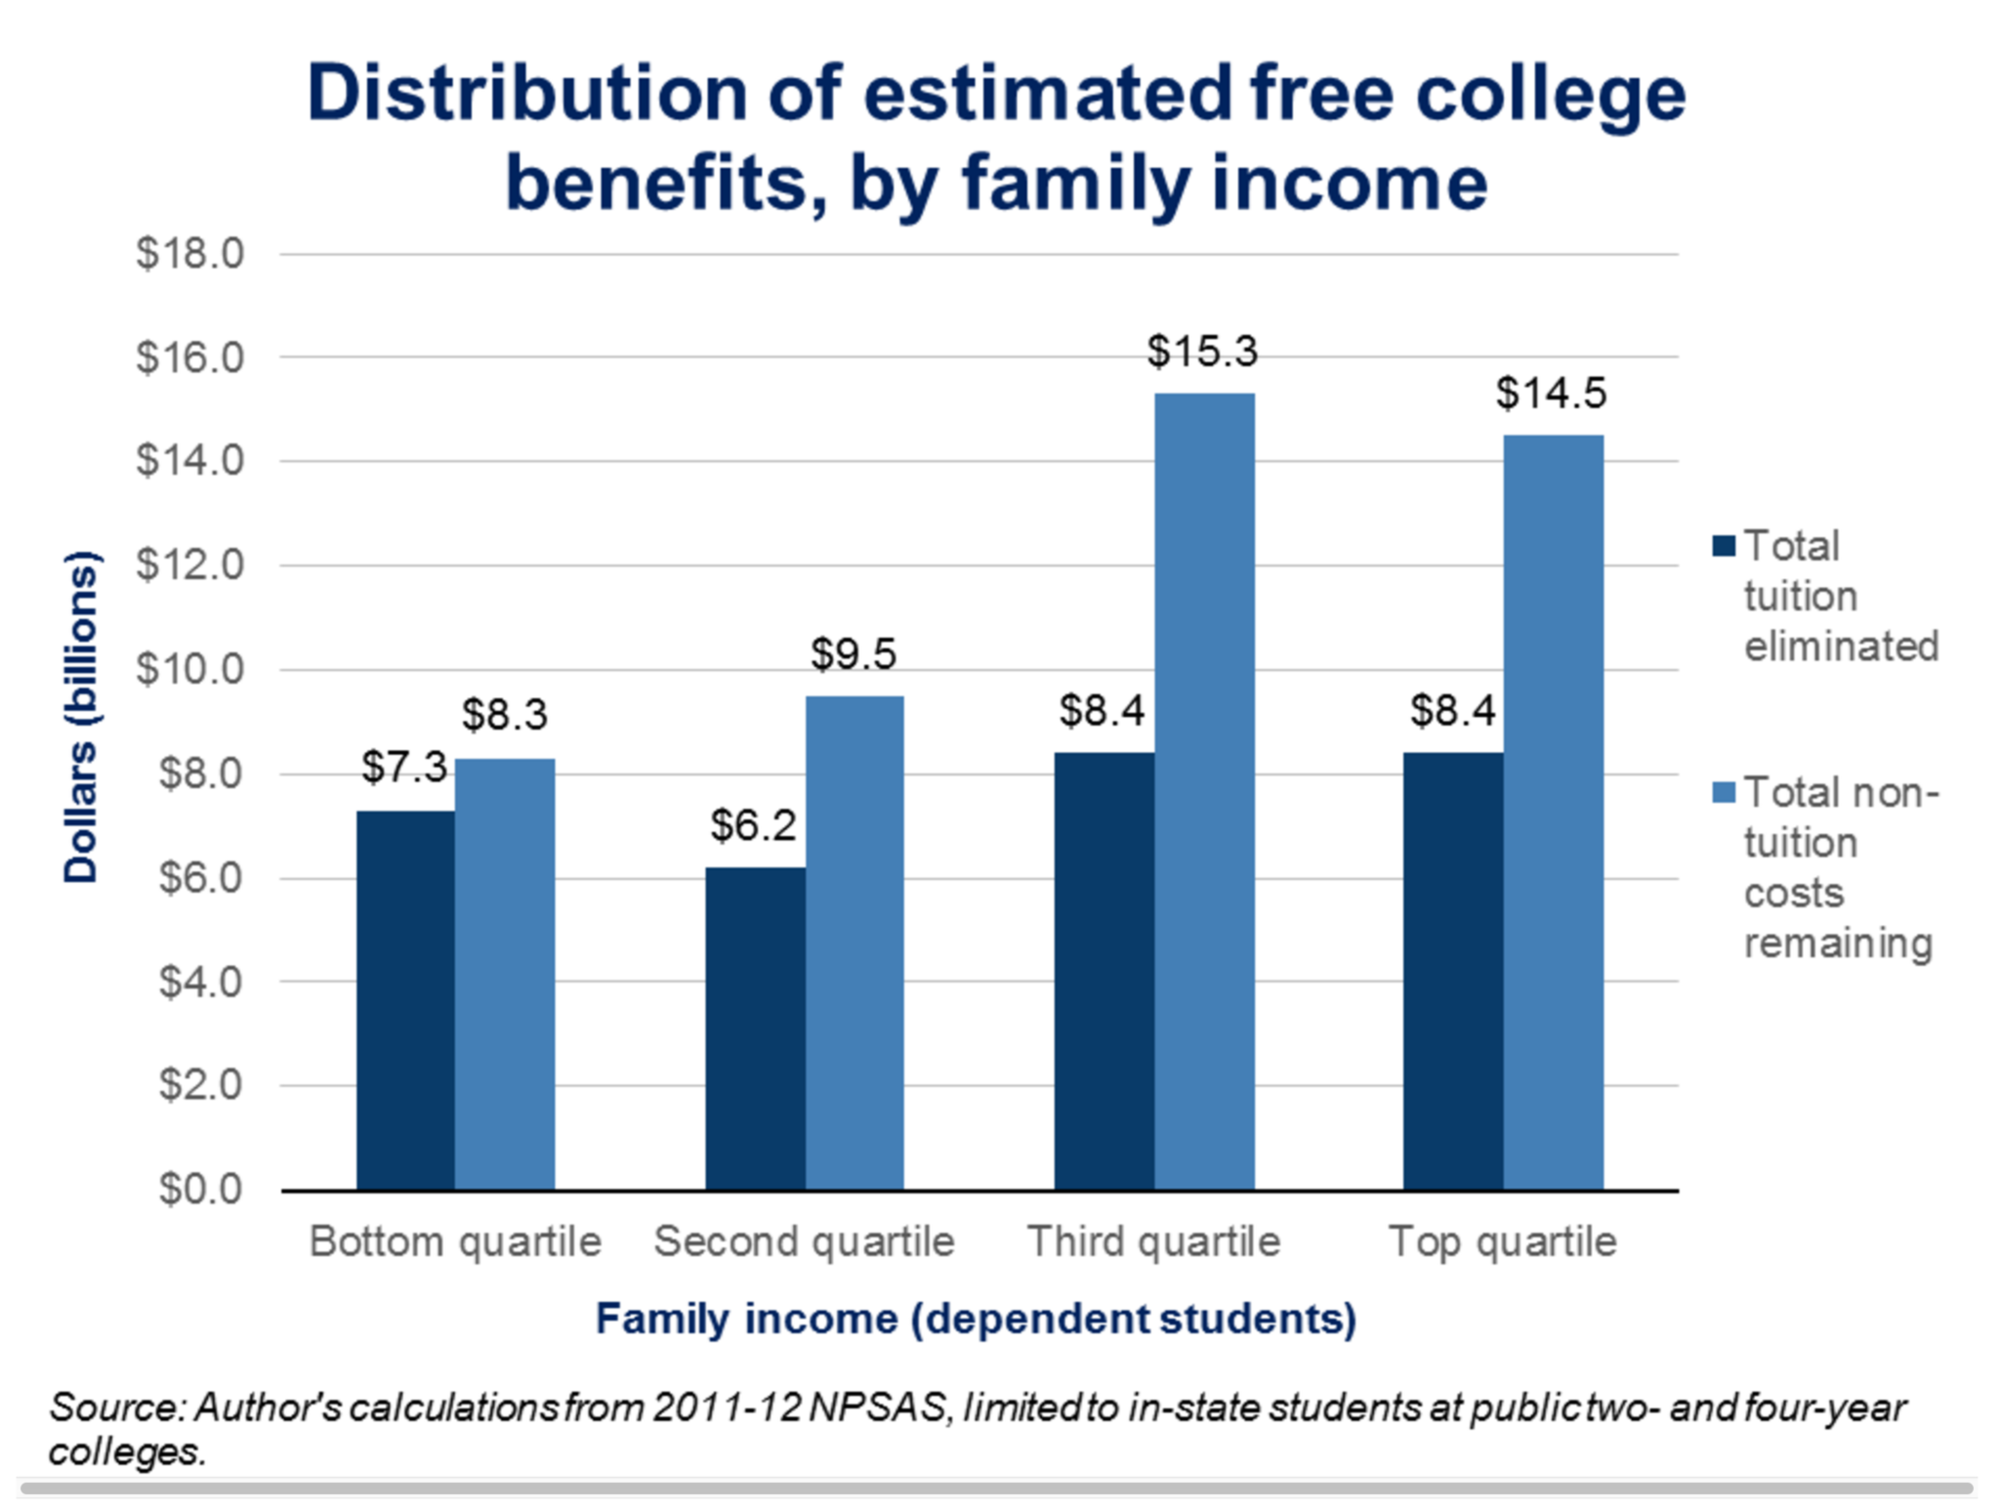 Students from the upper half of income distribution would receive $16.8 billion in tuition assistance, compared with $13.5 billion going to those in the lower-income brackets (dark blue bars).